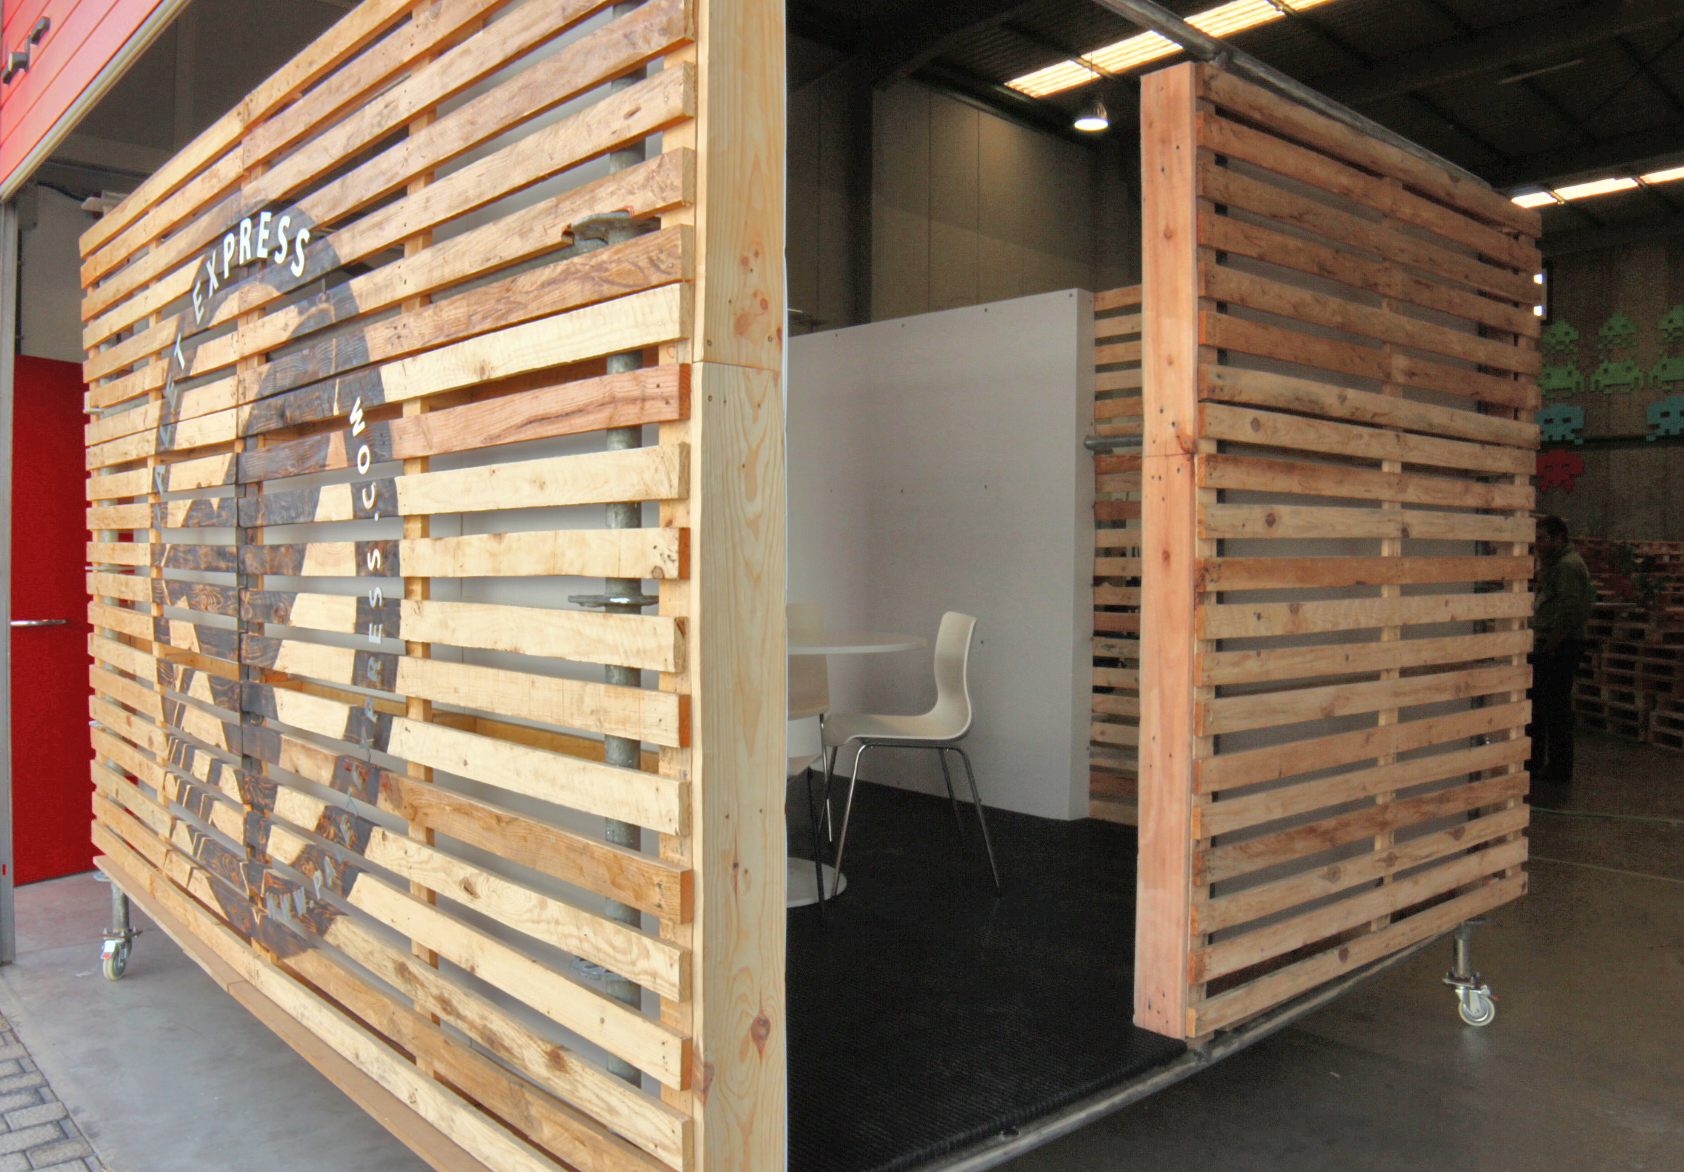 Oscar rodr guez paletexpress co working space for Pallet wall on wheels